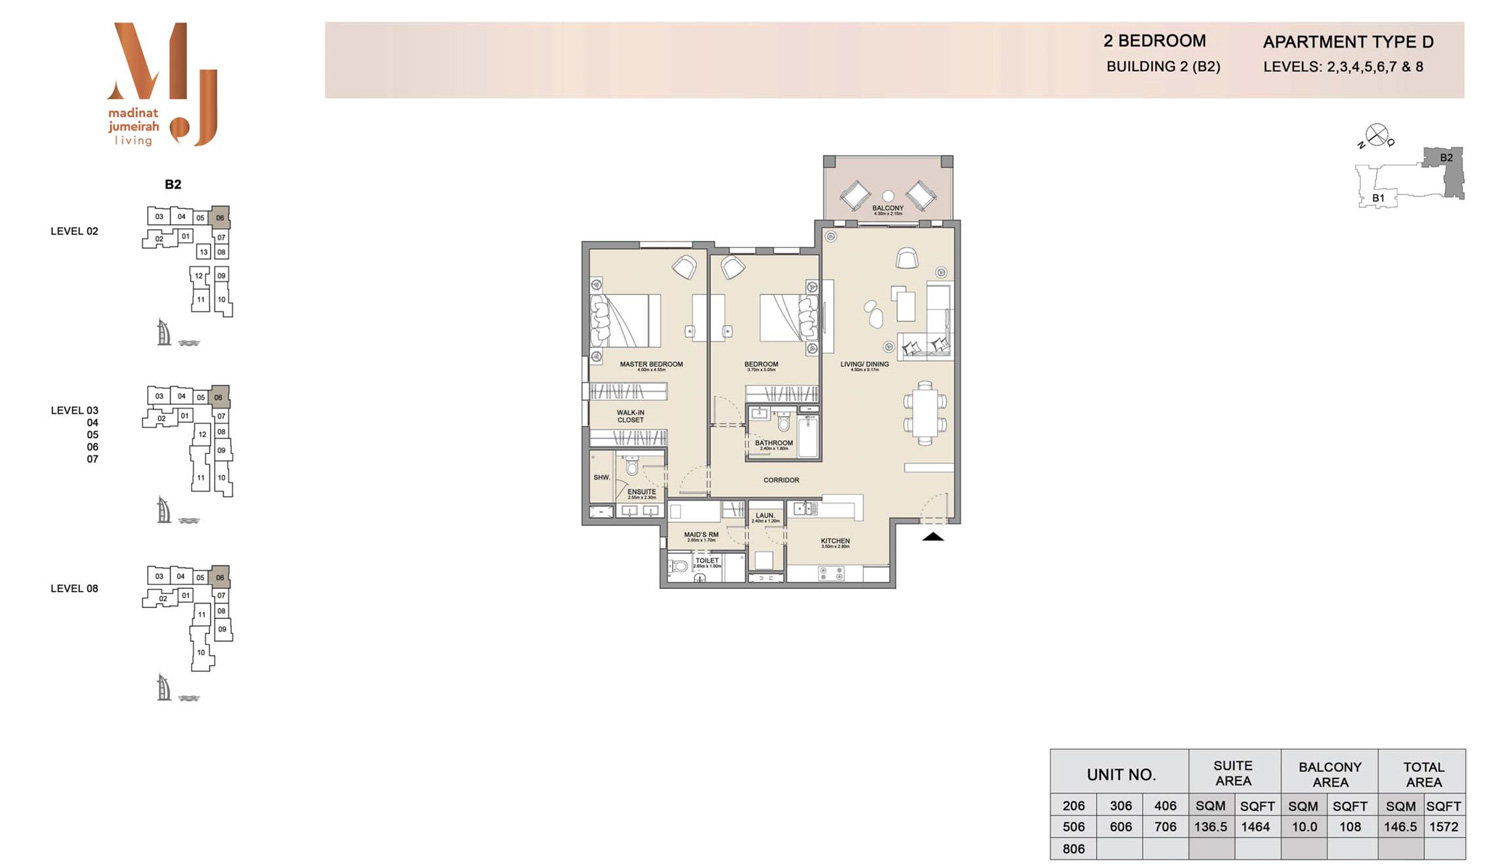 2 Bedroom B 2, Type D, Levels 2 to 8, Size 1572 sq.ft